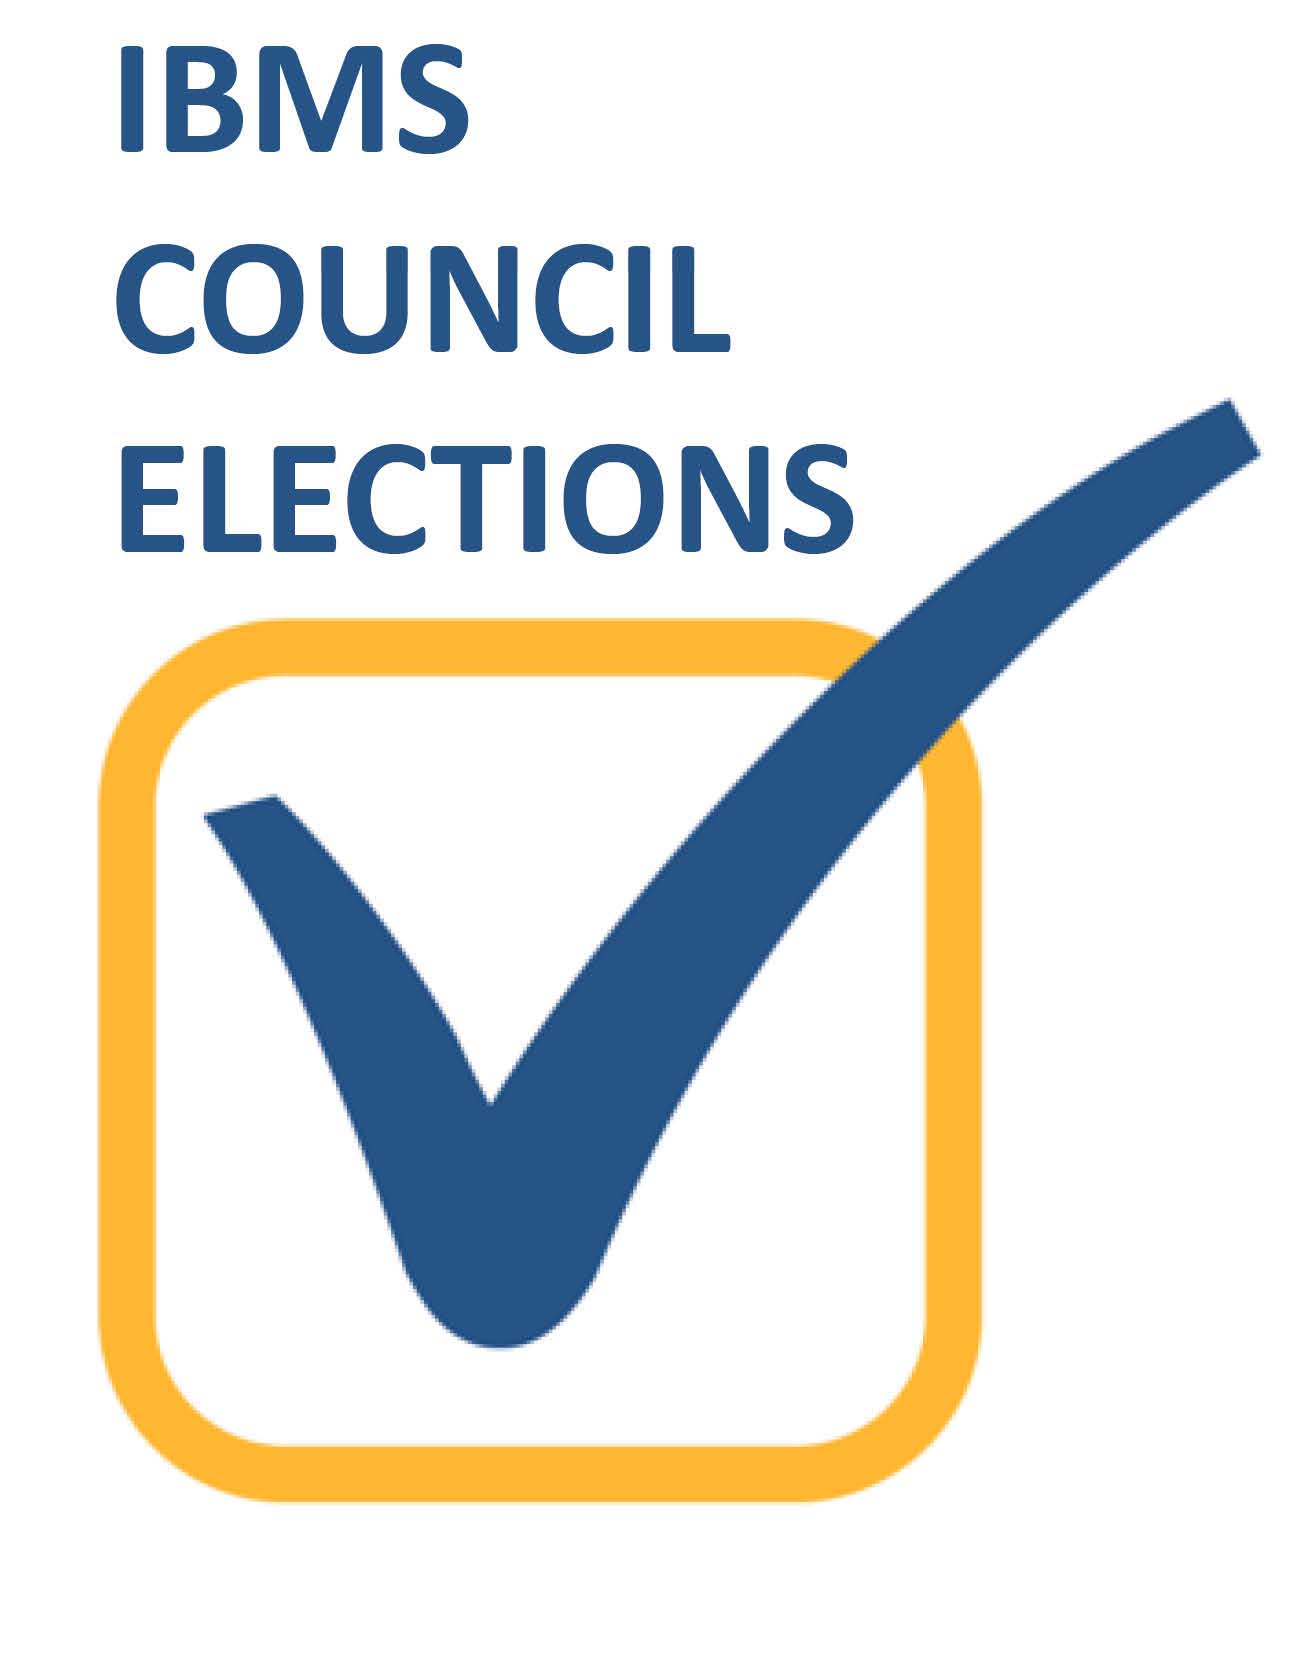 logo for IBMS Council elections